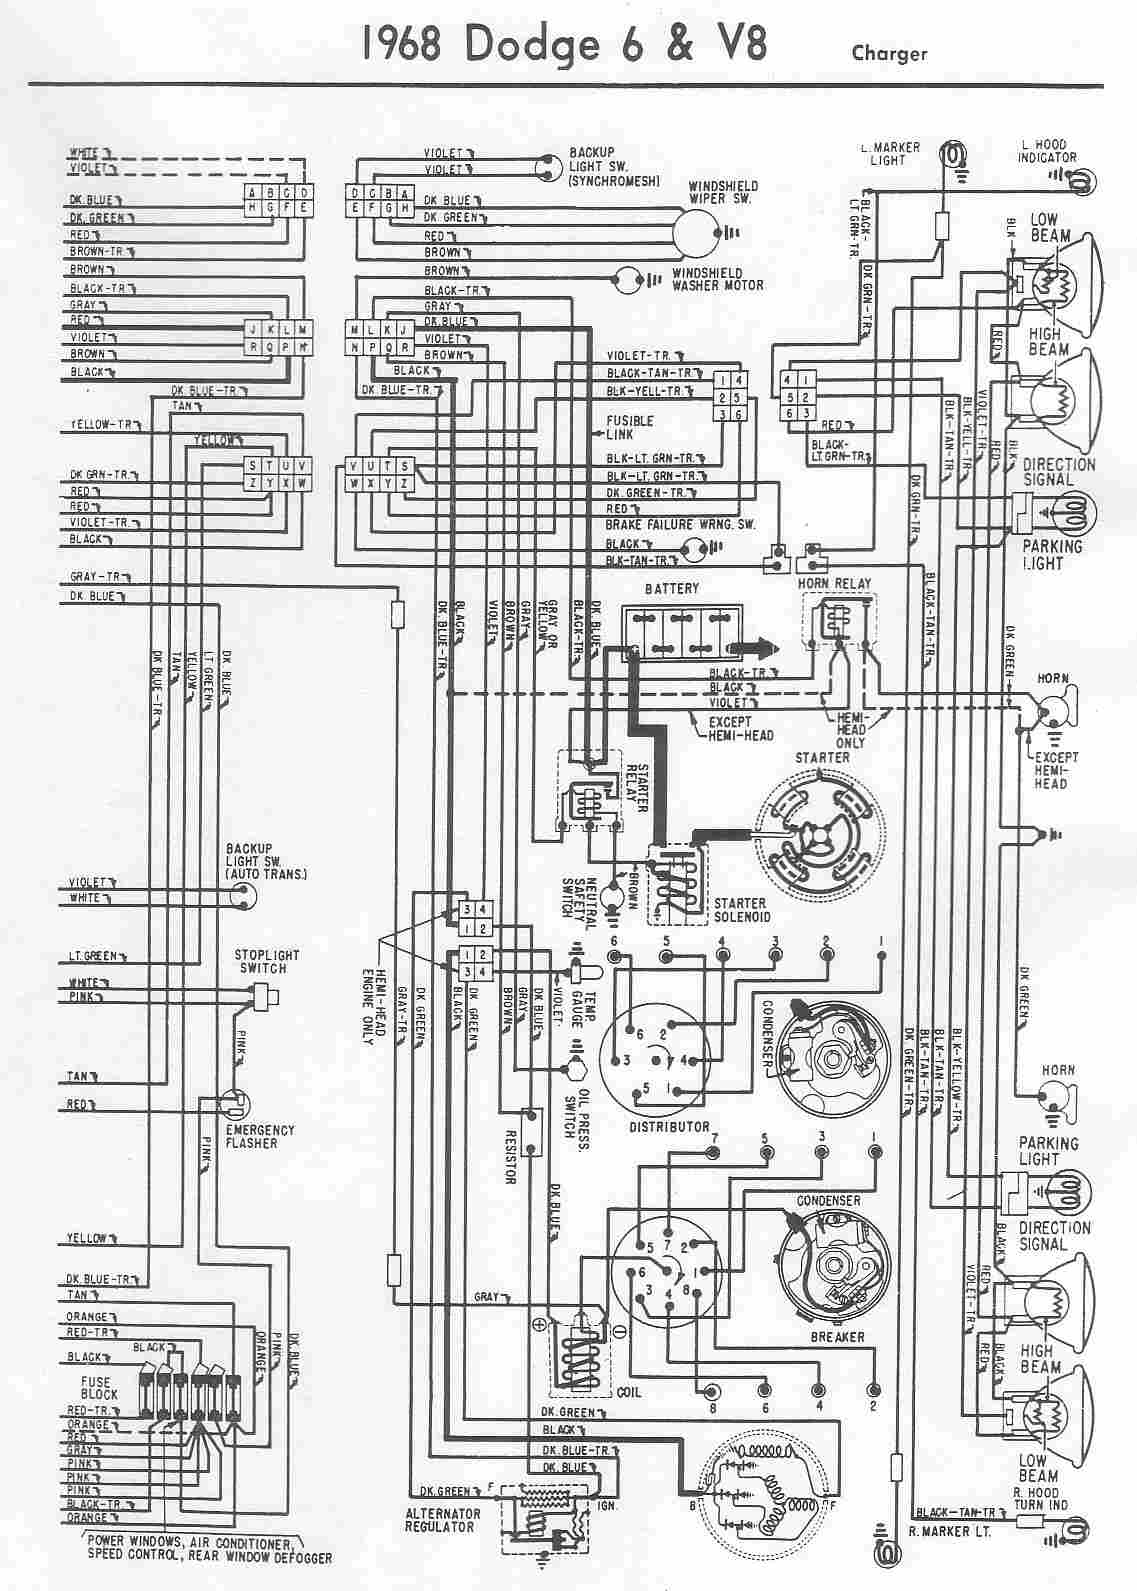 1966 dodge charger wiring diagram wiring diagram database 1967 barracuda wiring diagrams 1966 dodge dart ignition wiring diagram [ 1137 x 1591 Pixel ]